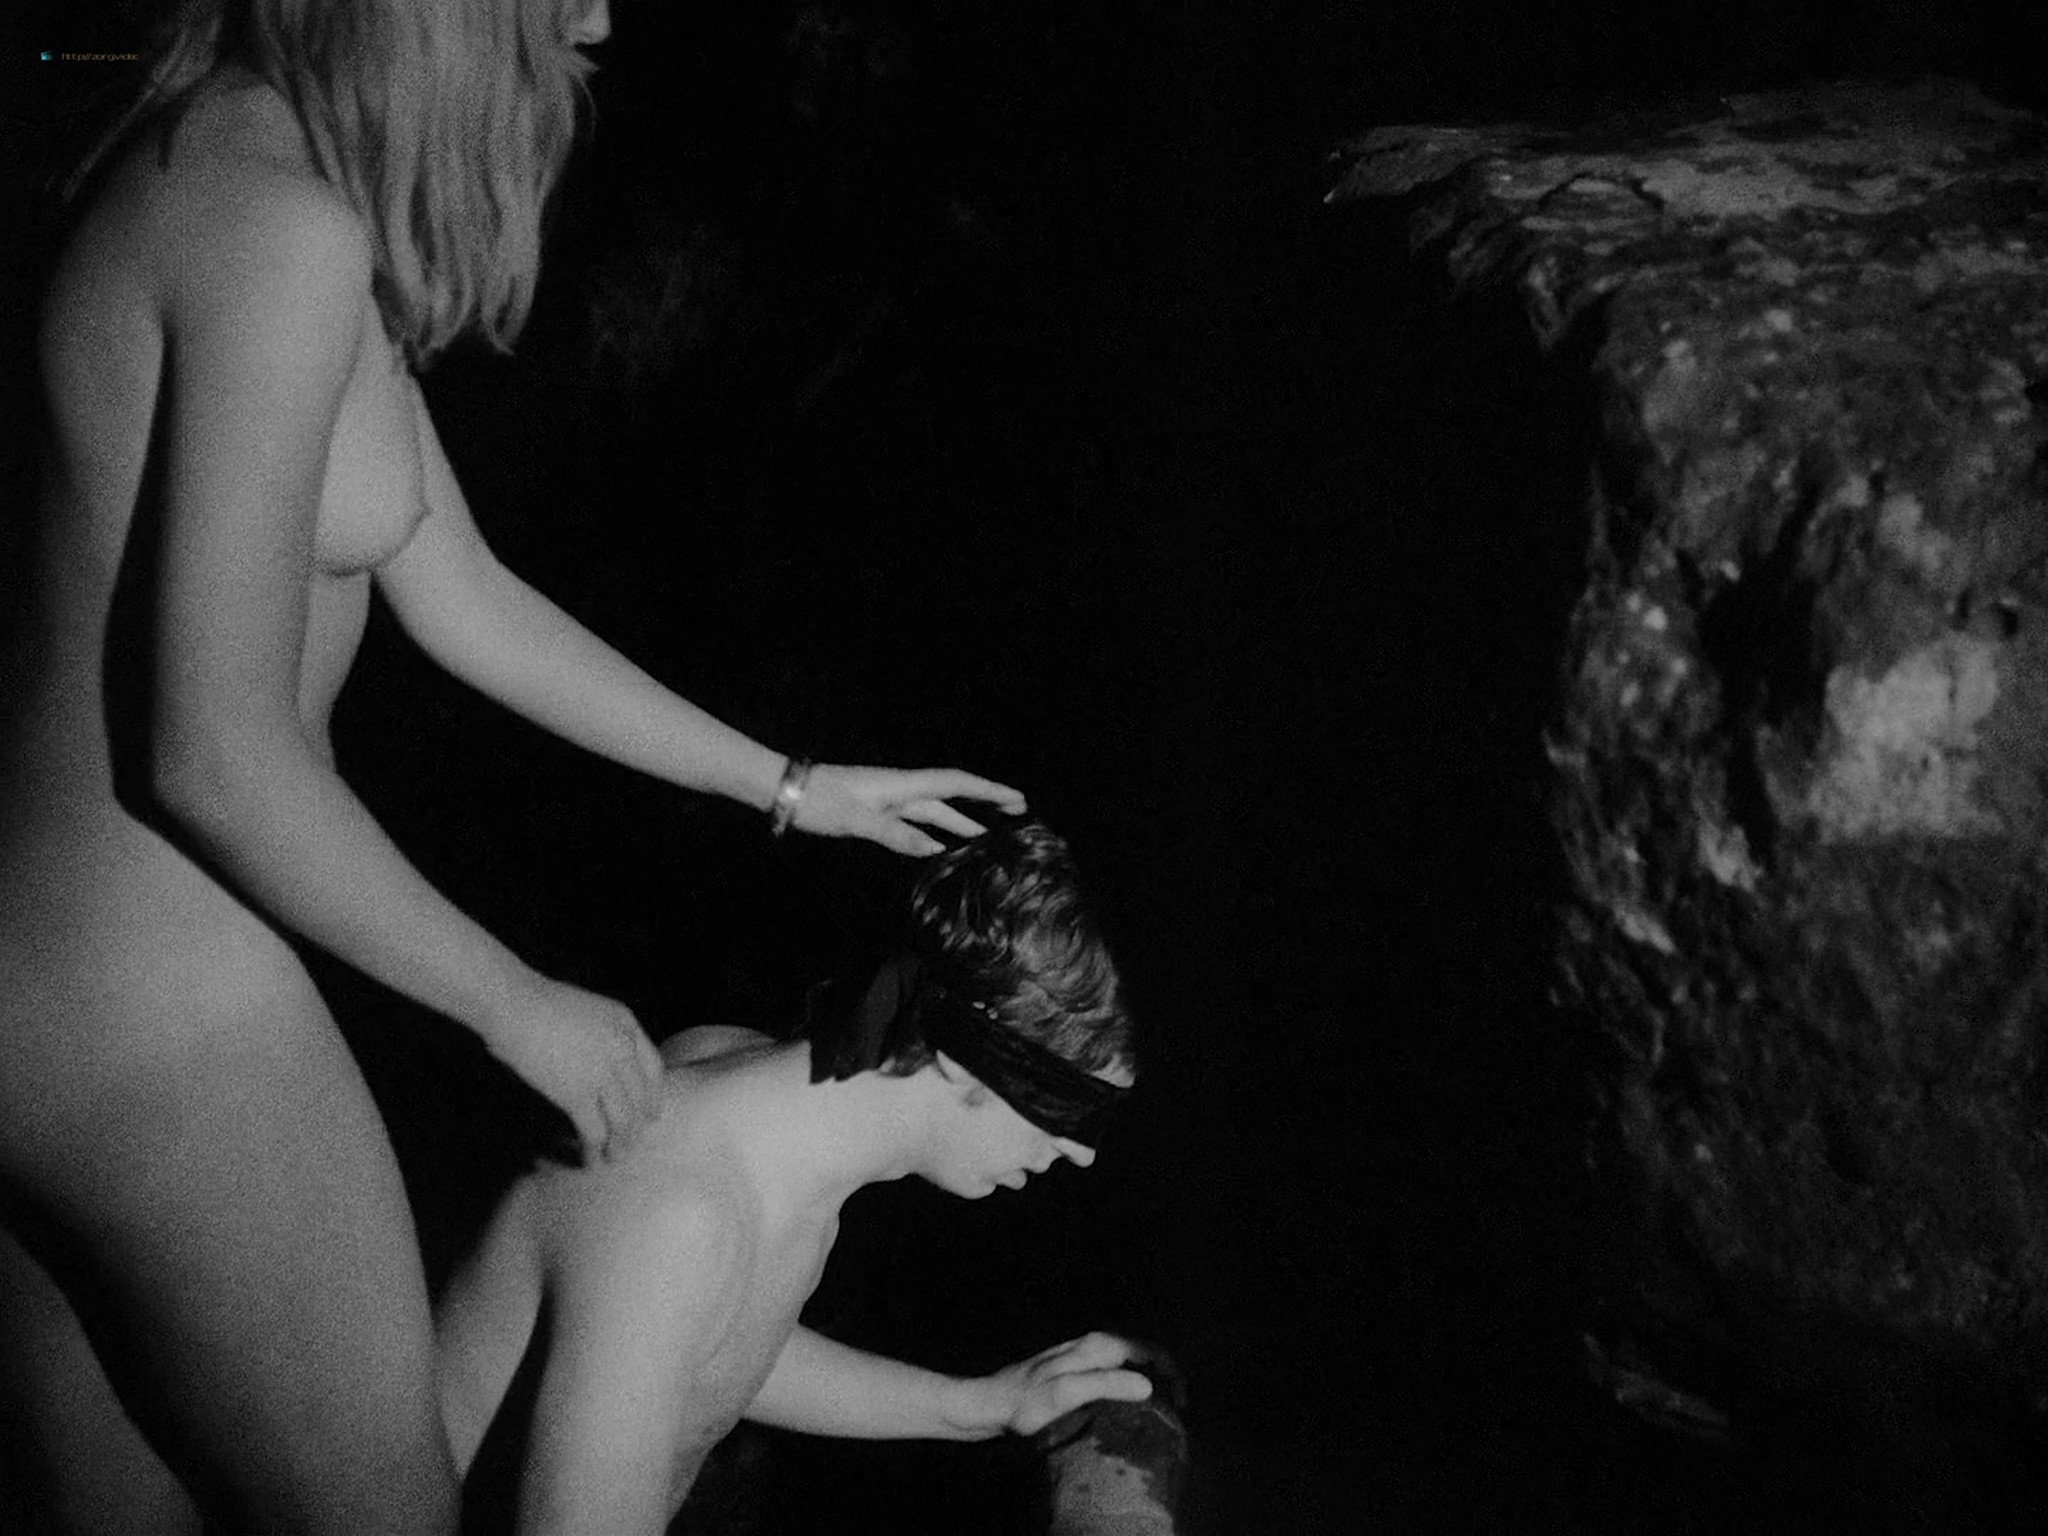 Maxine Sanders nude full frontal others nude too - Legend of the Witches (1970) HD 1080p BluRay (14)